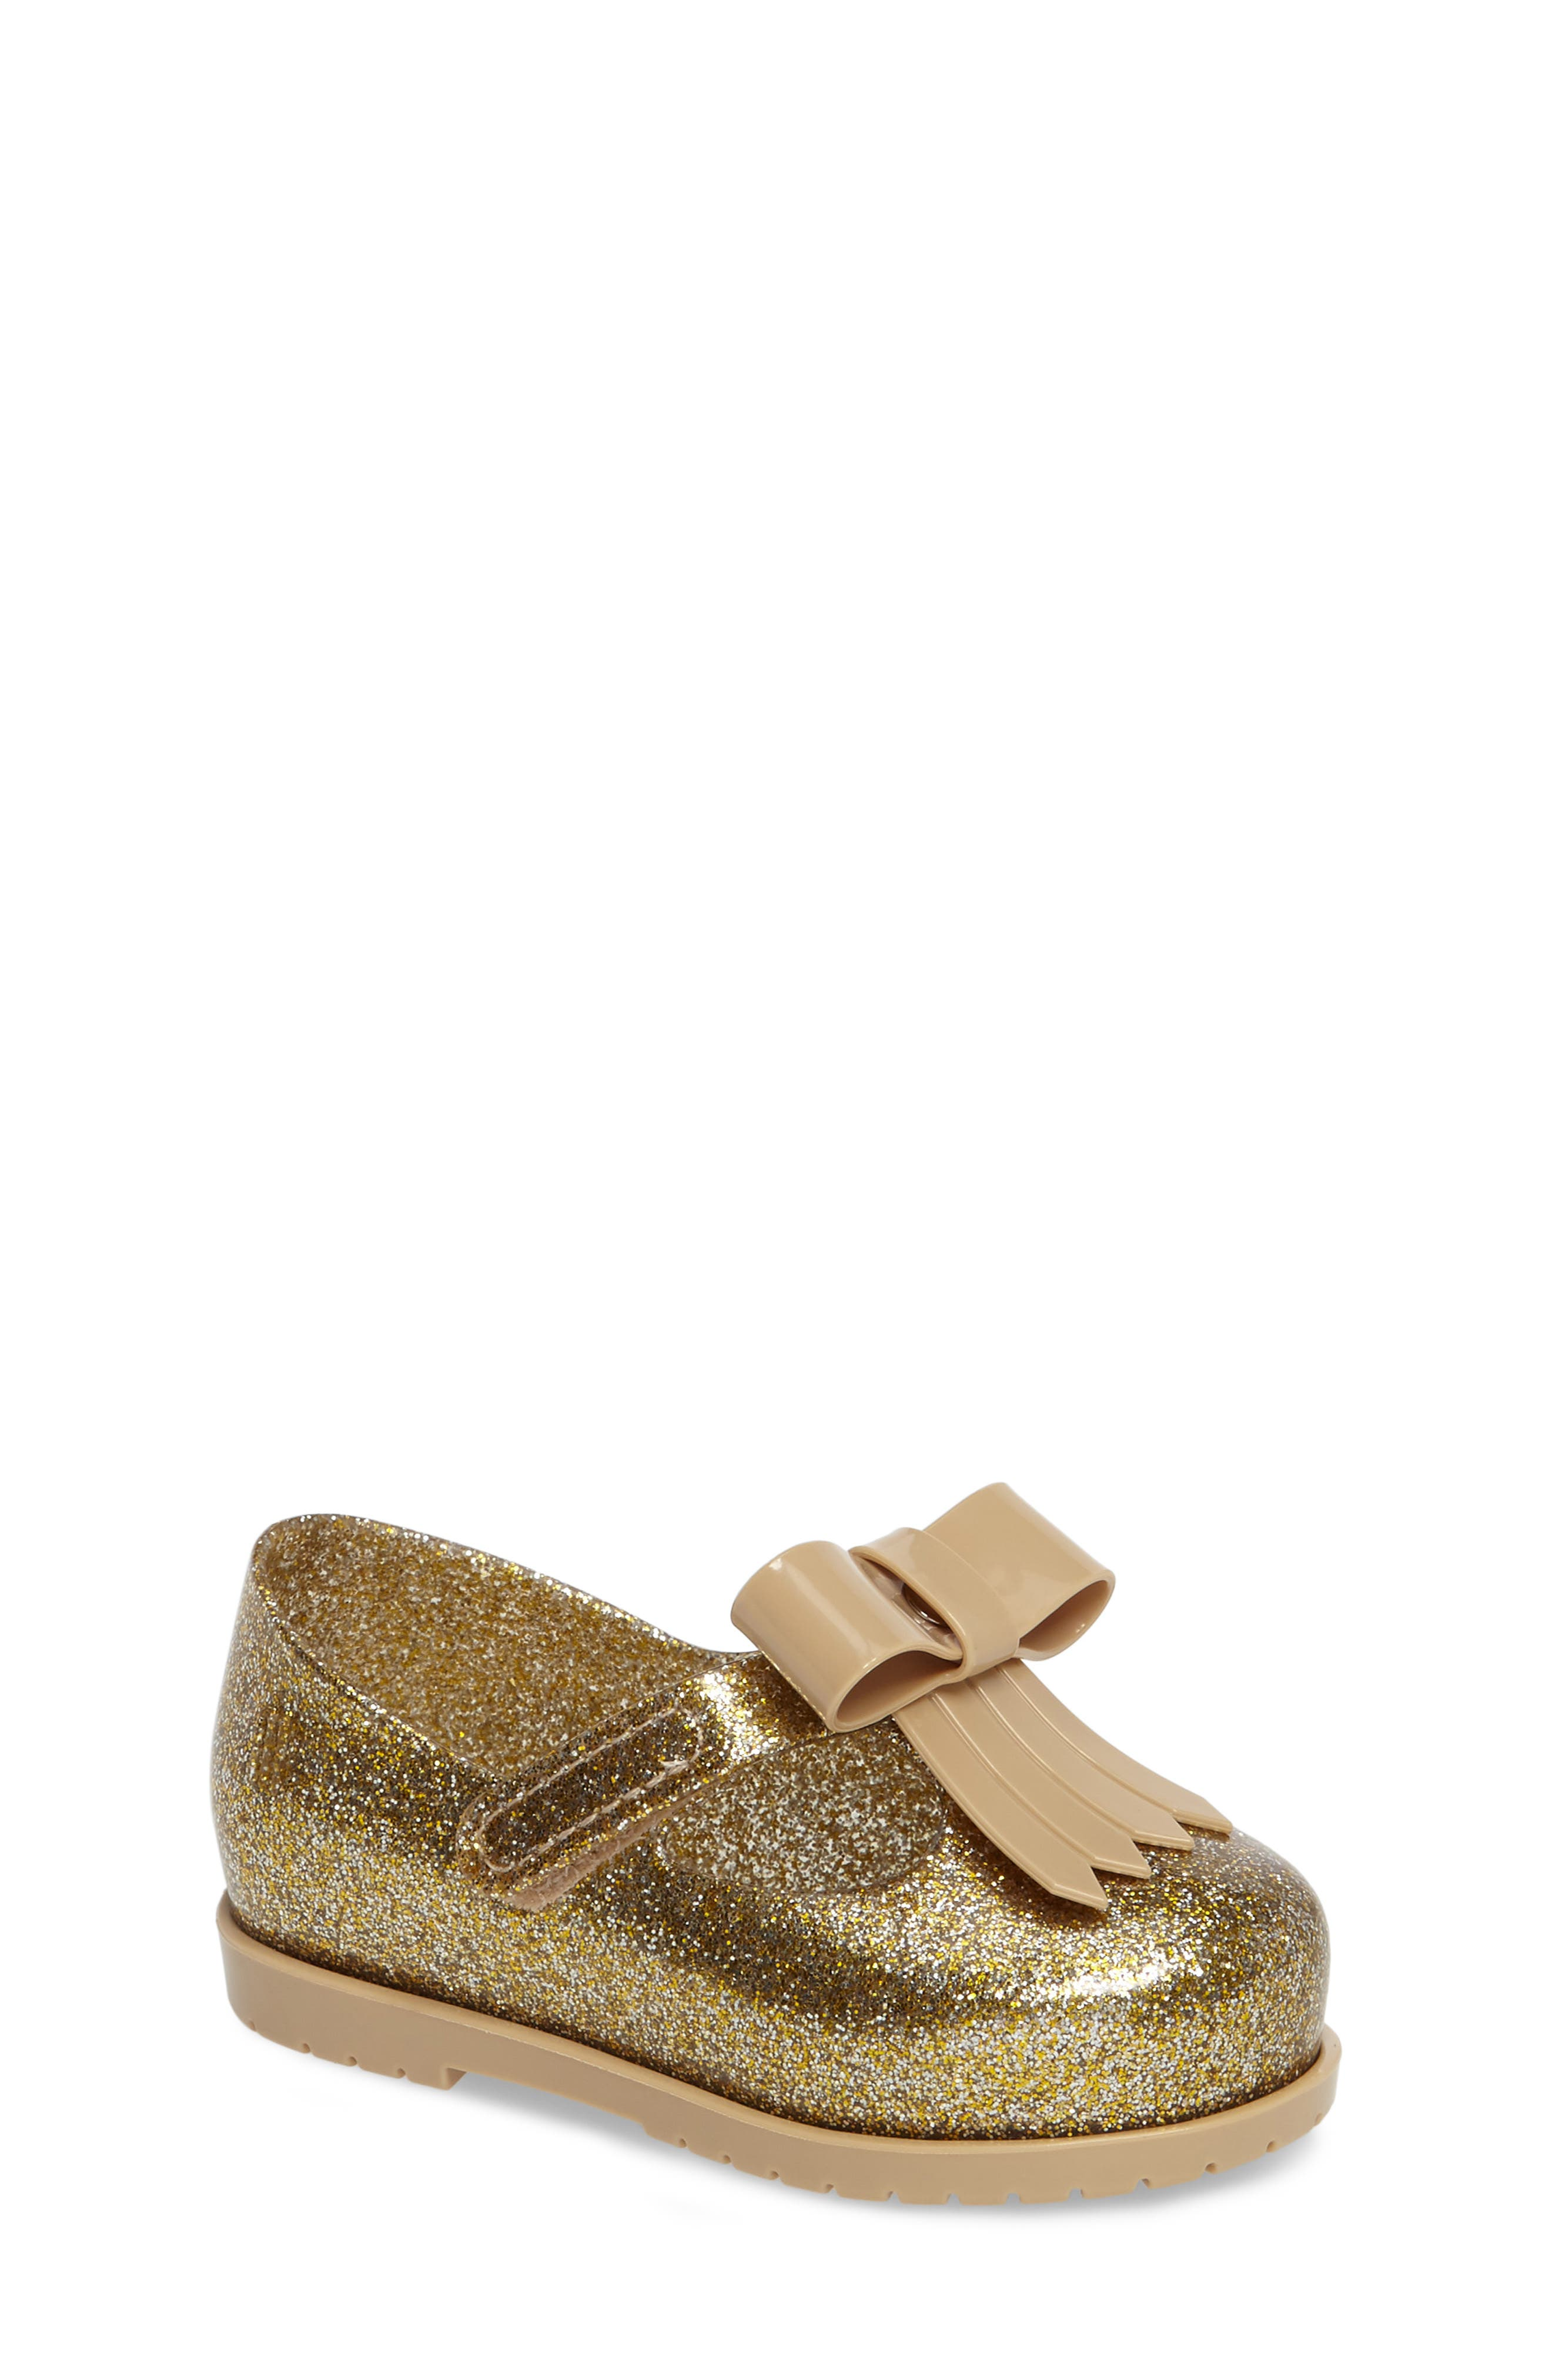 Mini Melissa Classic Baby II Mary Jane (Walker & Toddler)